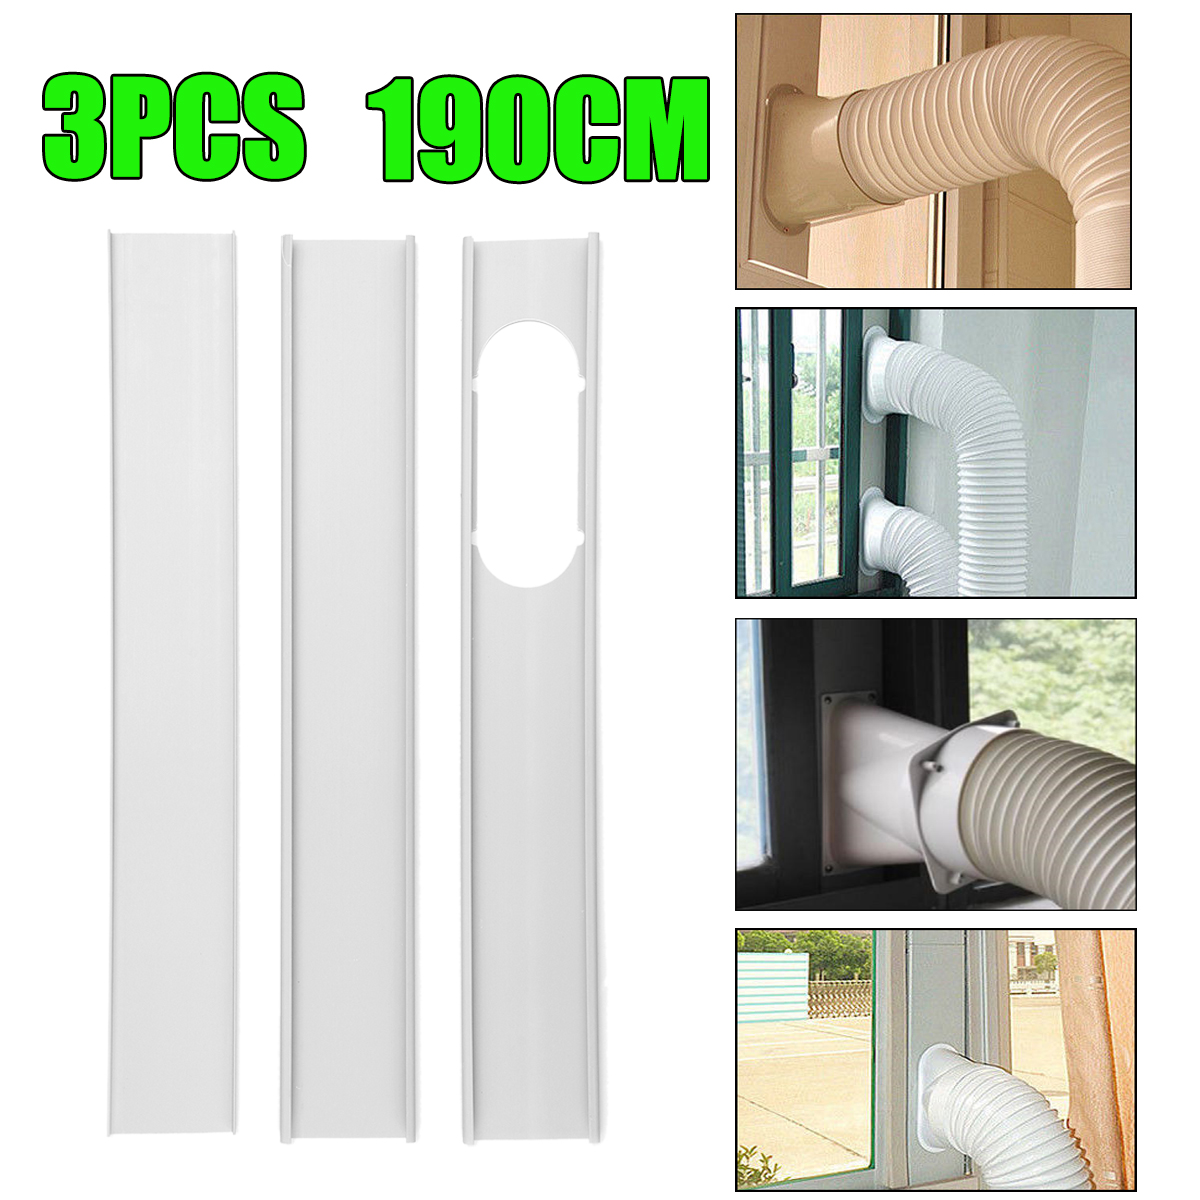 3pcs adjustable window slide kit plates drainage boards exhaust hose tube connector for portable air conditioner air cooler